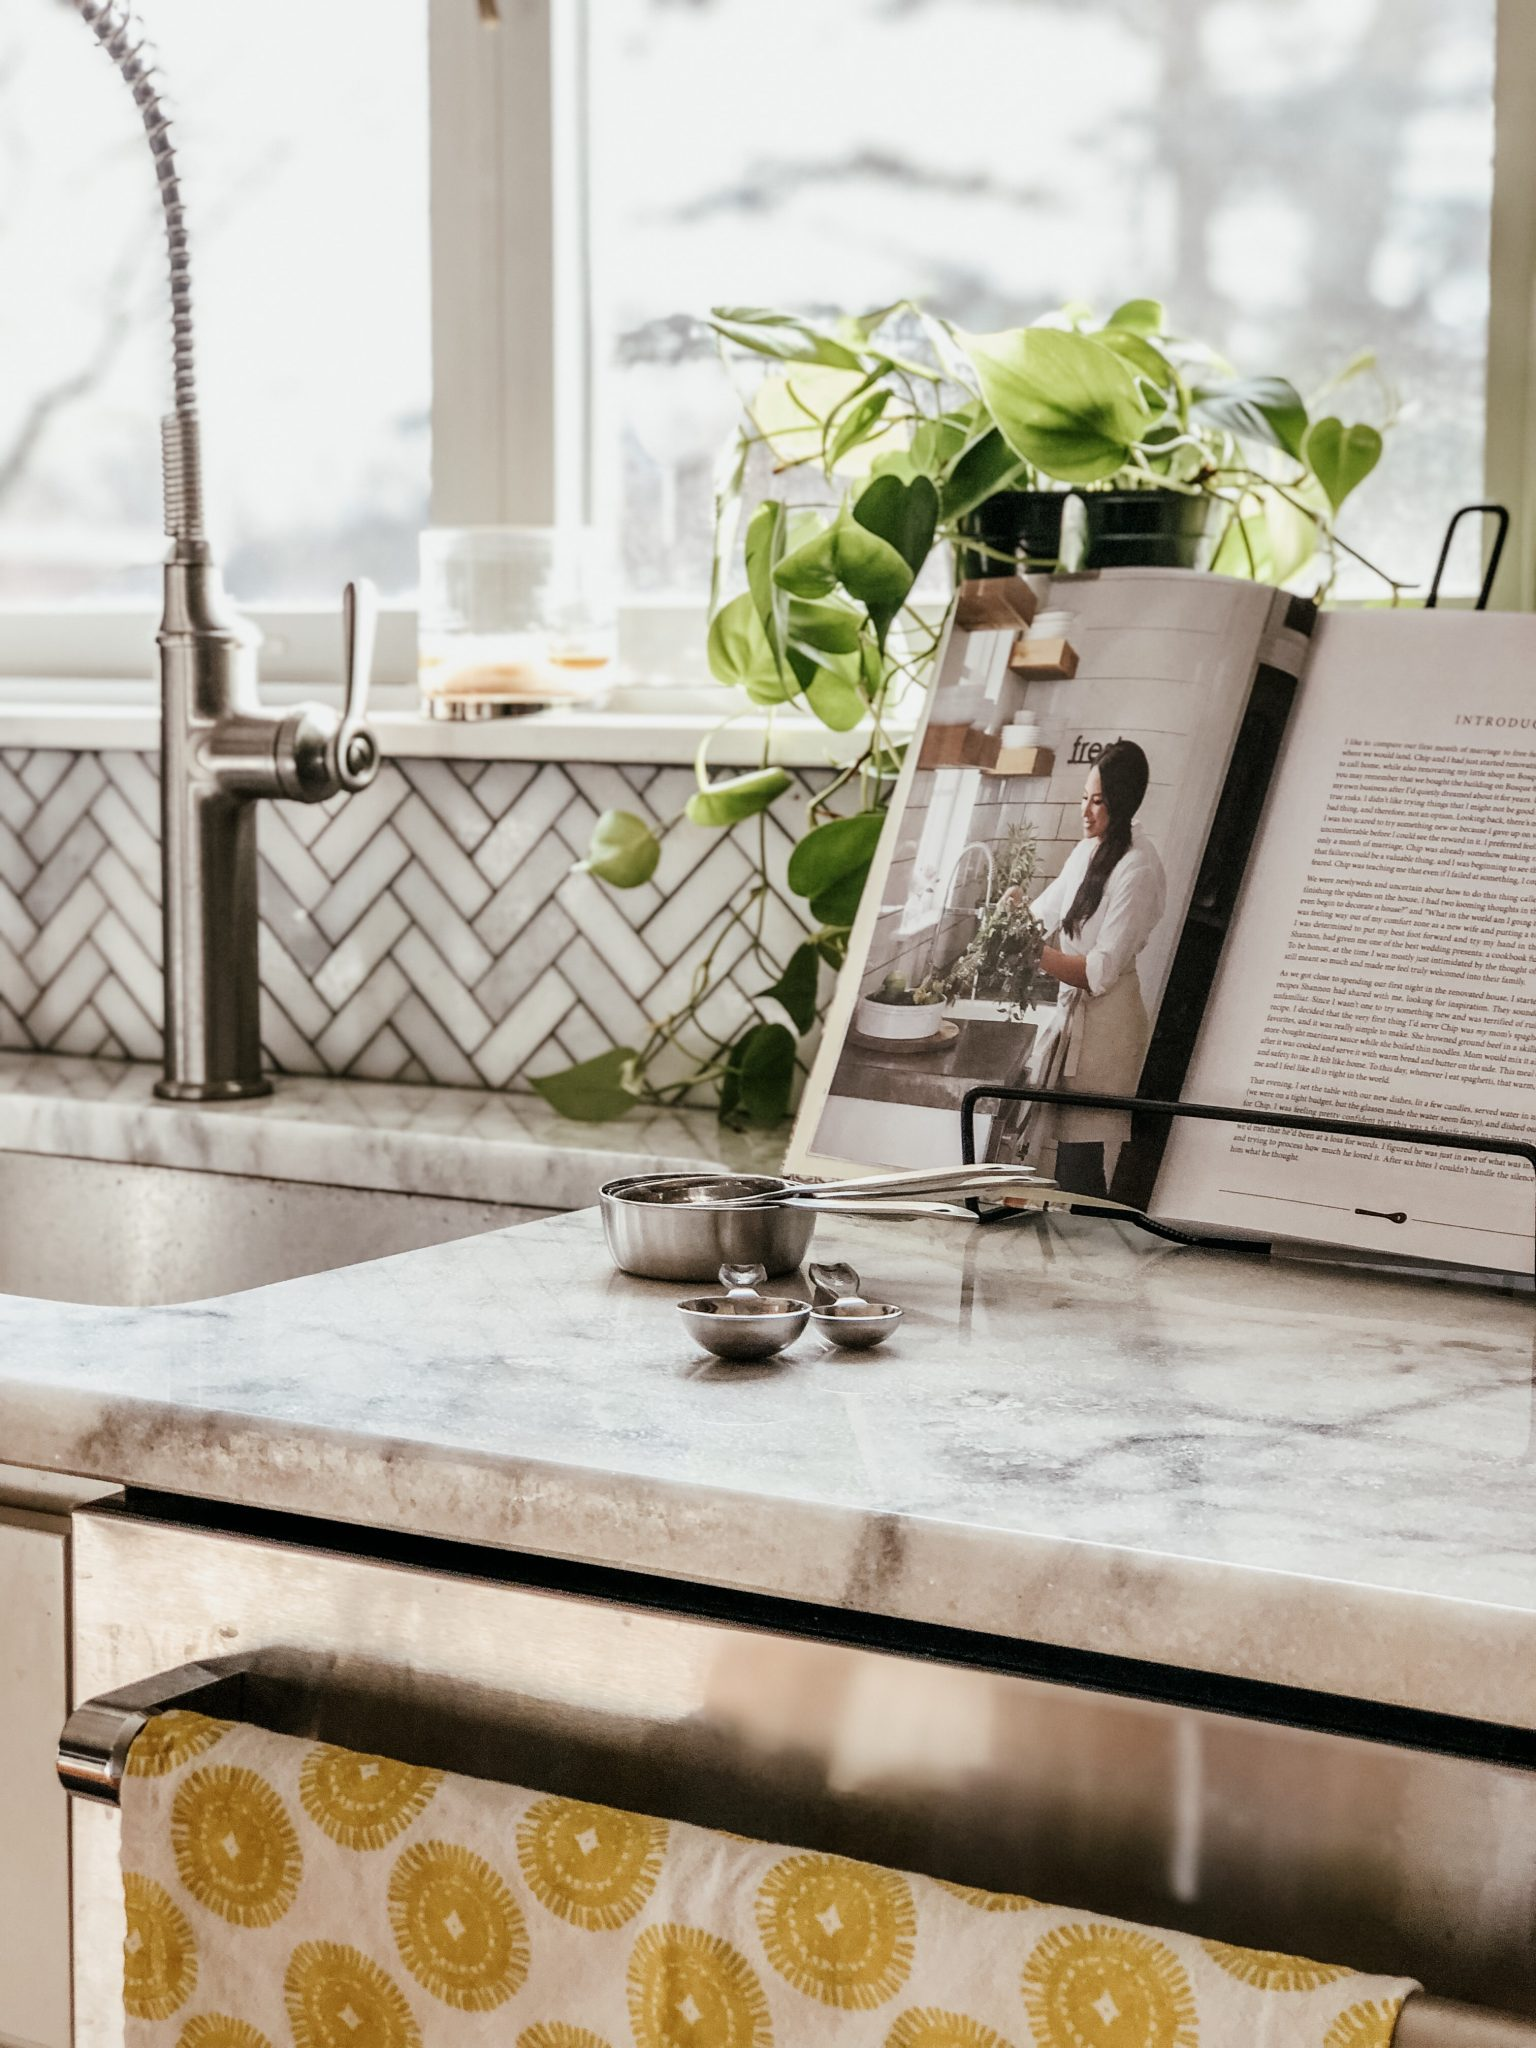 Target Decor Finds | Daily Splendor Life and Style Blog | home decor, kitchen decor, fixer upper style #farmhousestyle #farmhousedecor #kitcheninspo #targetstyle #targetfinds #homestyle